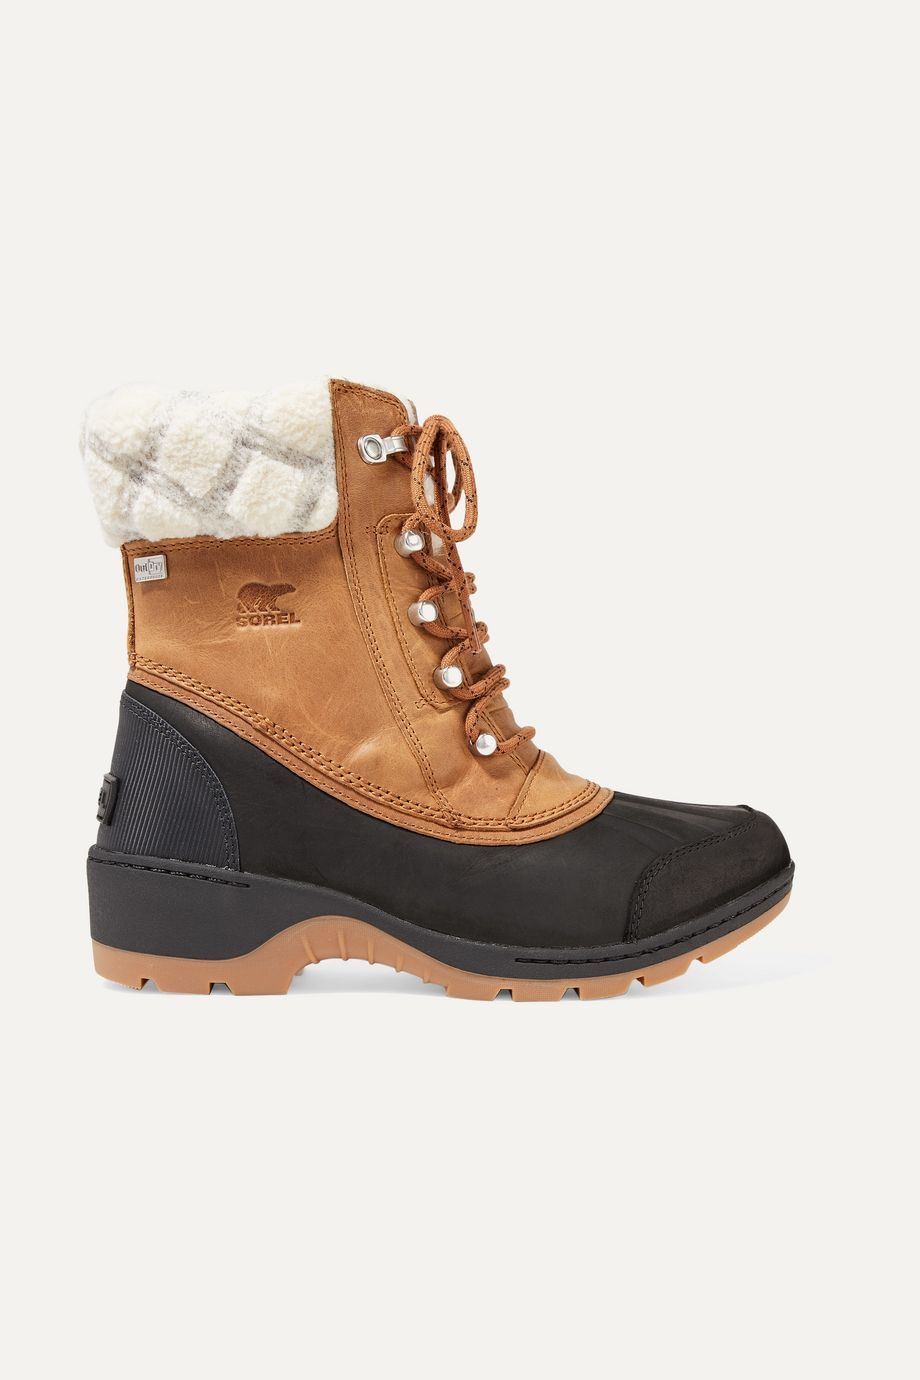 Sorel Whistler rubber and wool-trimmed waterproof nubuck boots